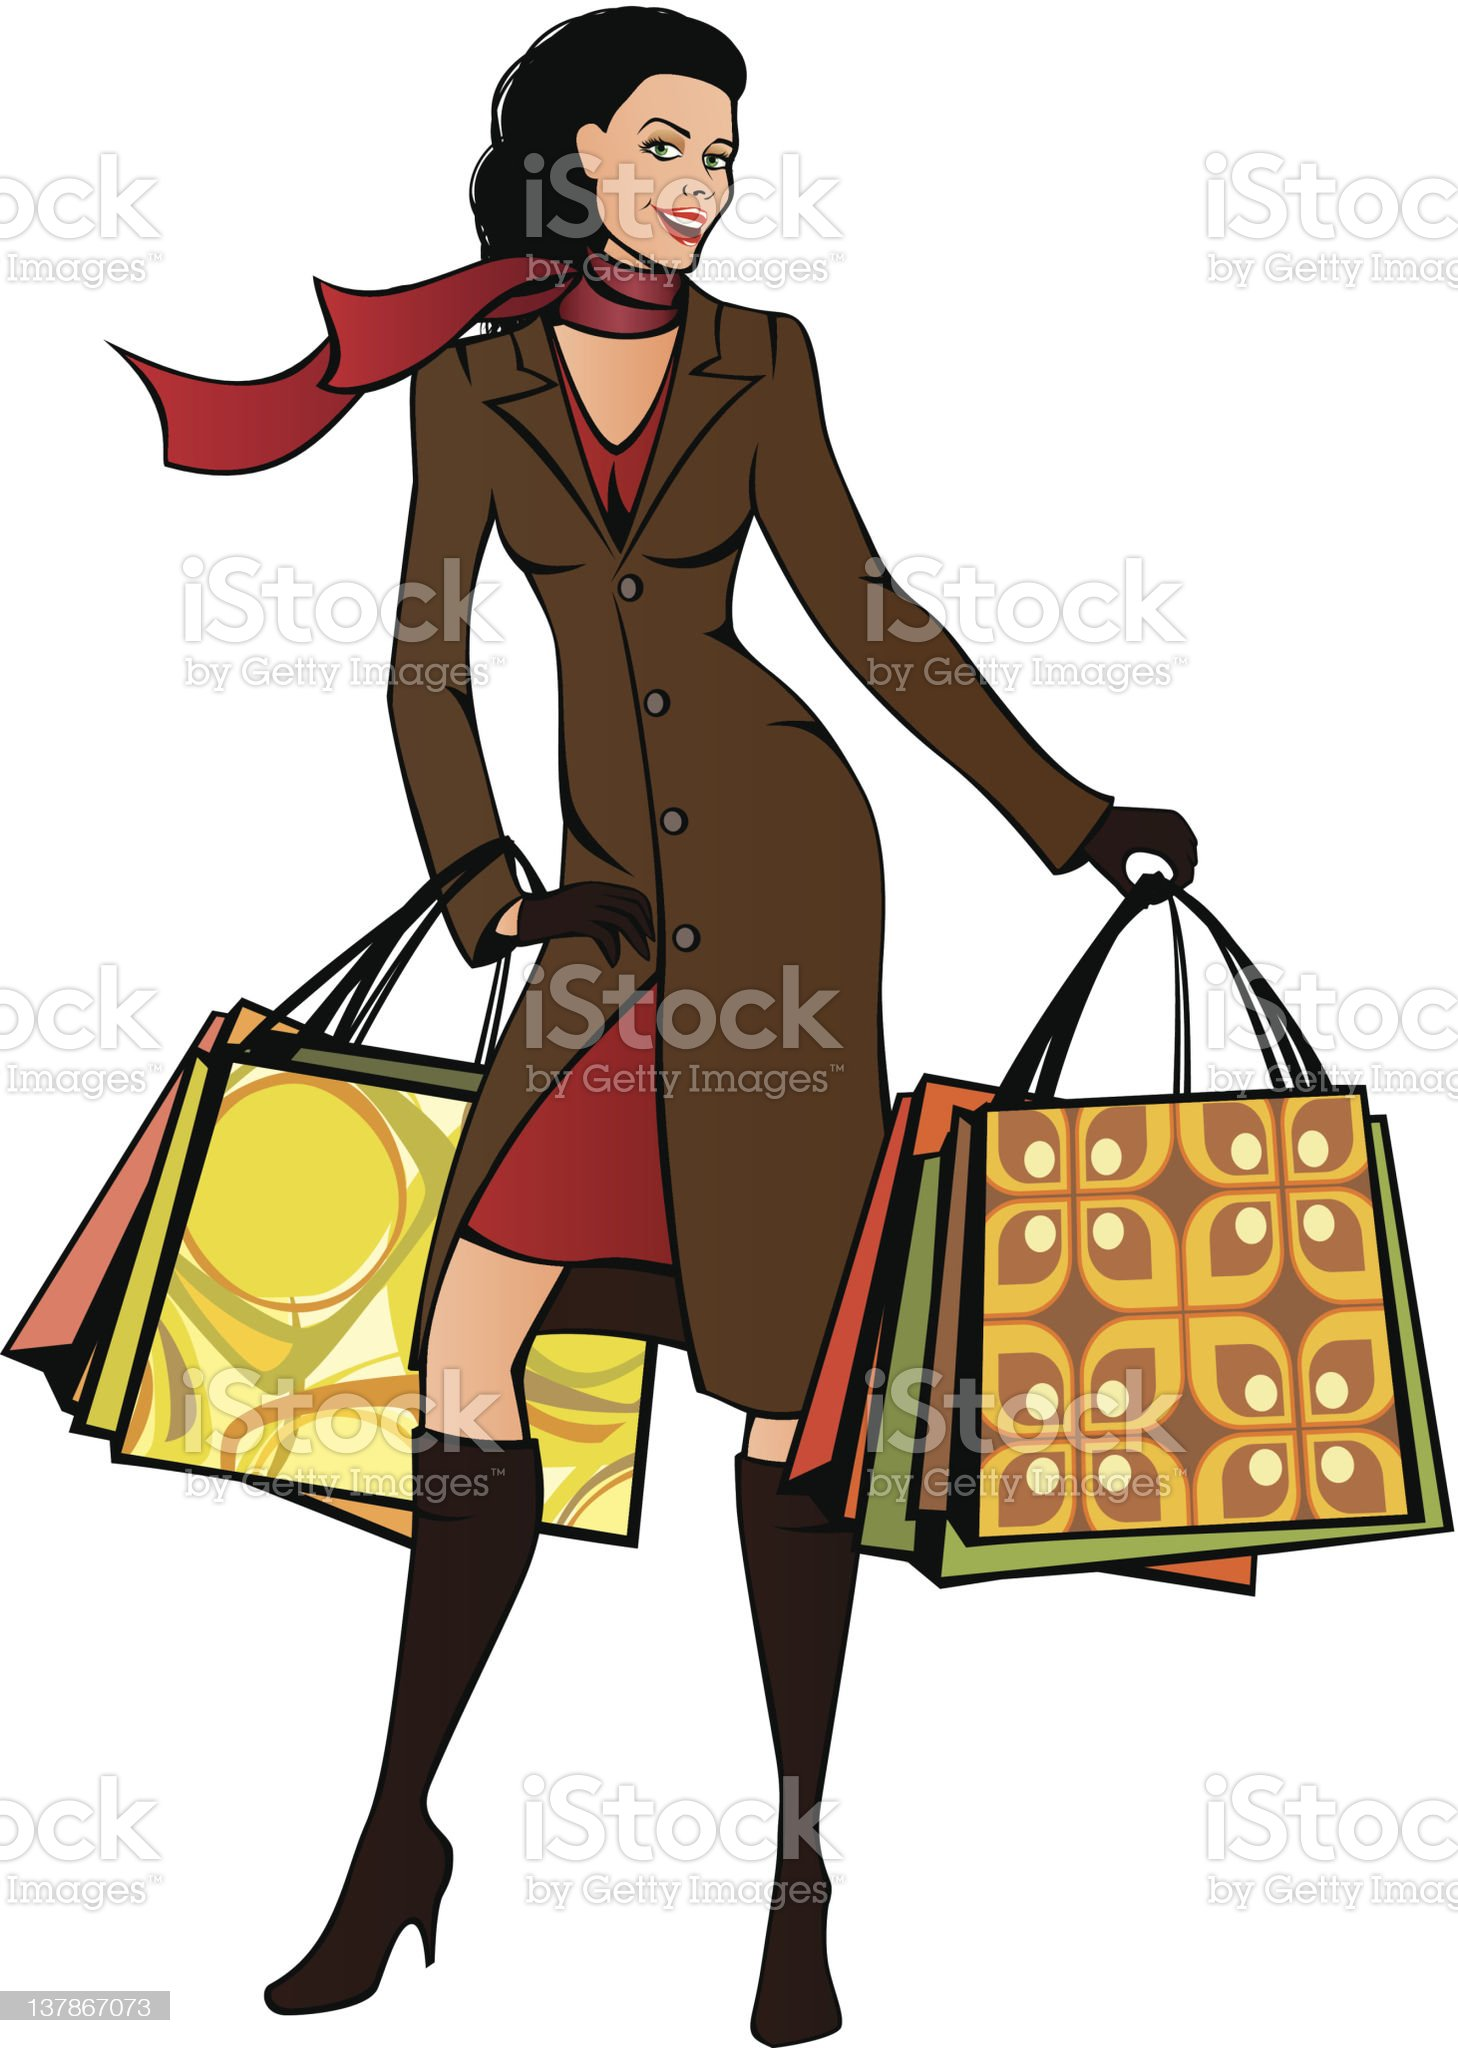 Shopping lady royalty-free stock vector art